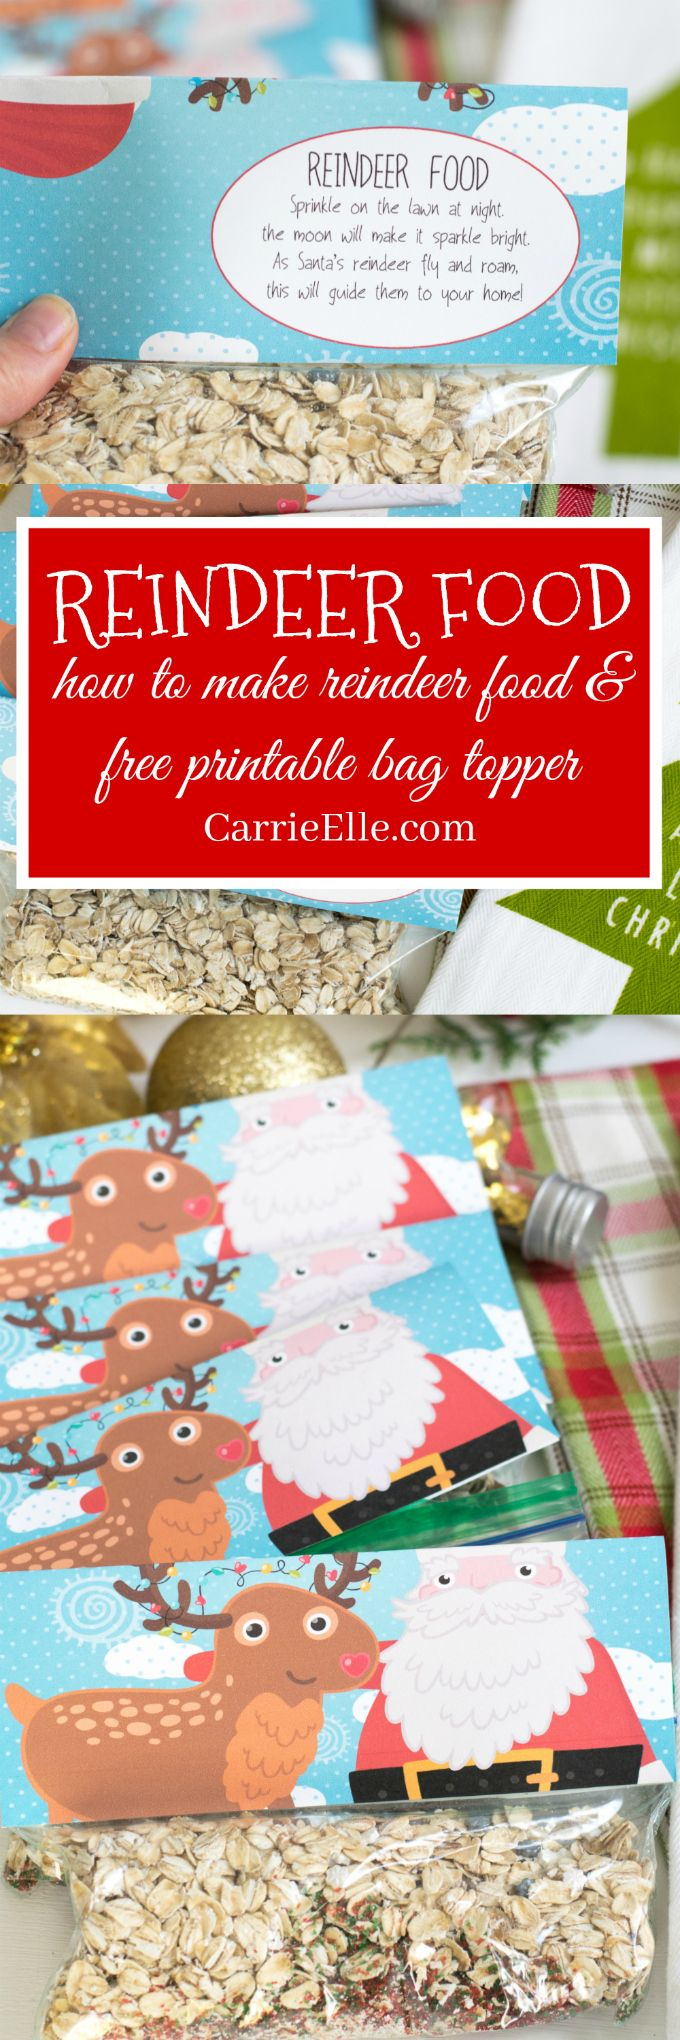 How to Make Reindeer Food (reindeer food recipe and printable bag topper with adorable poem!)